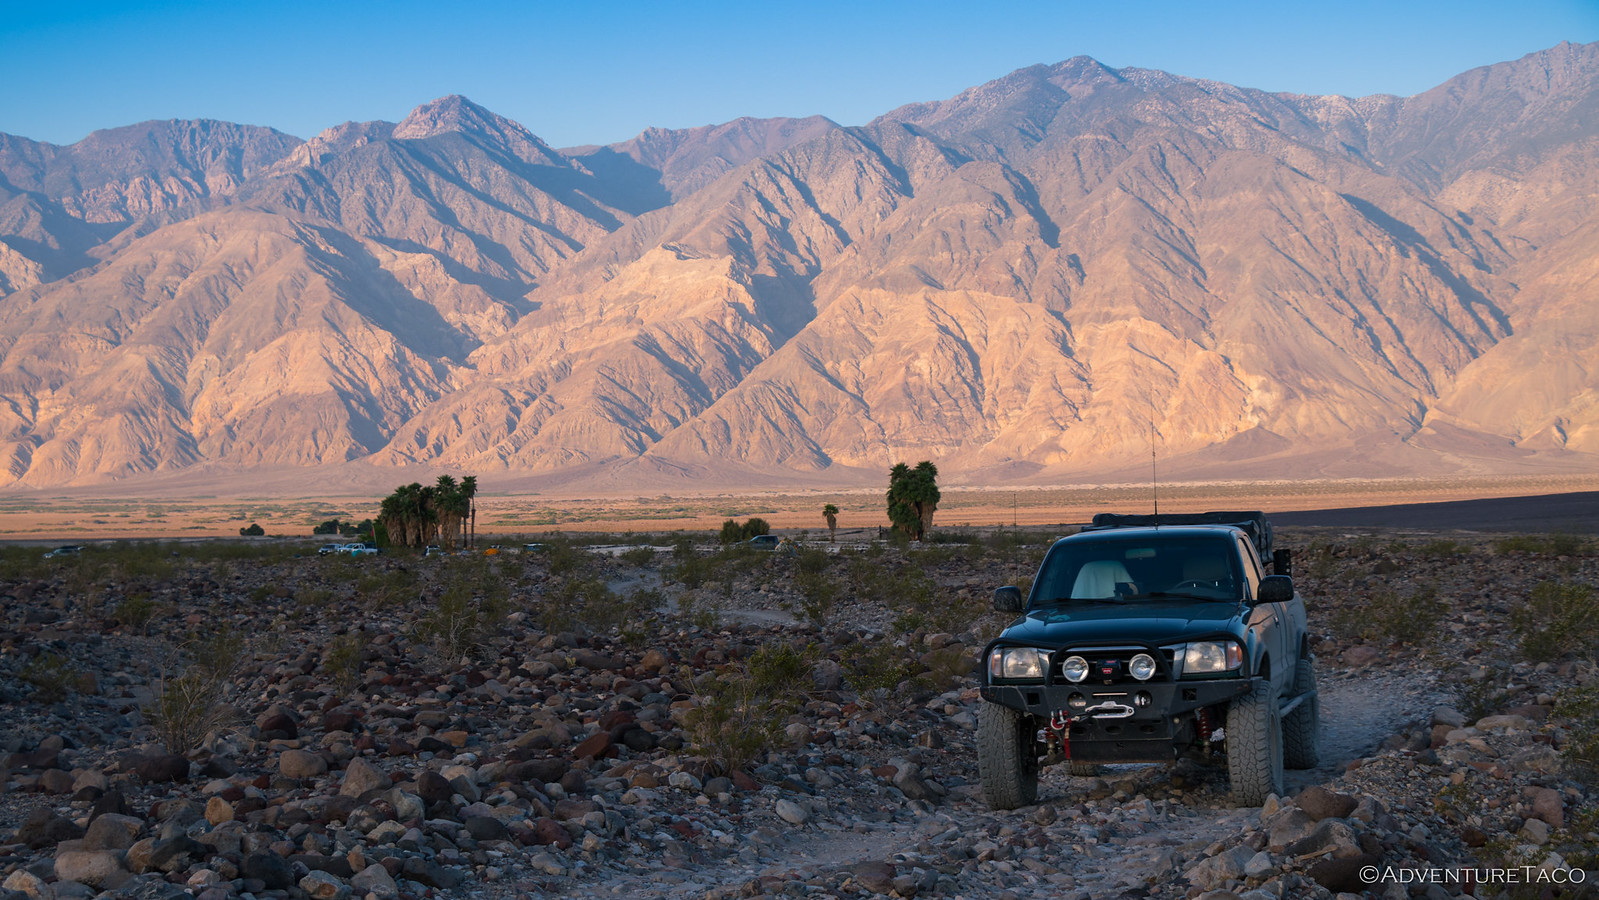 Back to Death Valley - Day 4, 5 - Steel Pass & Eureka Dunes